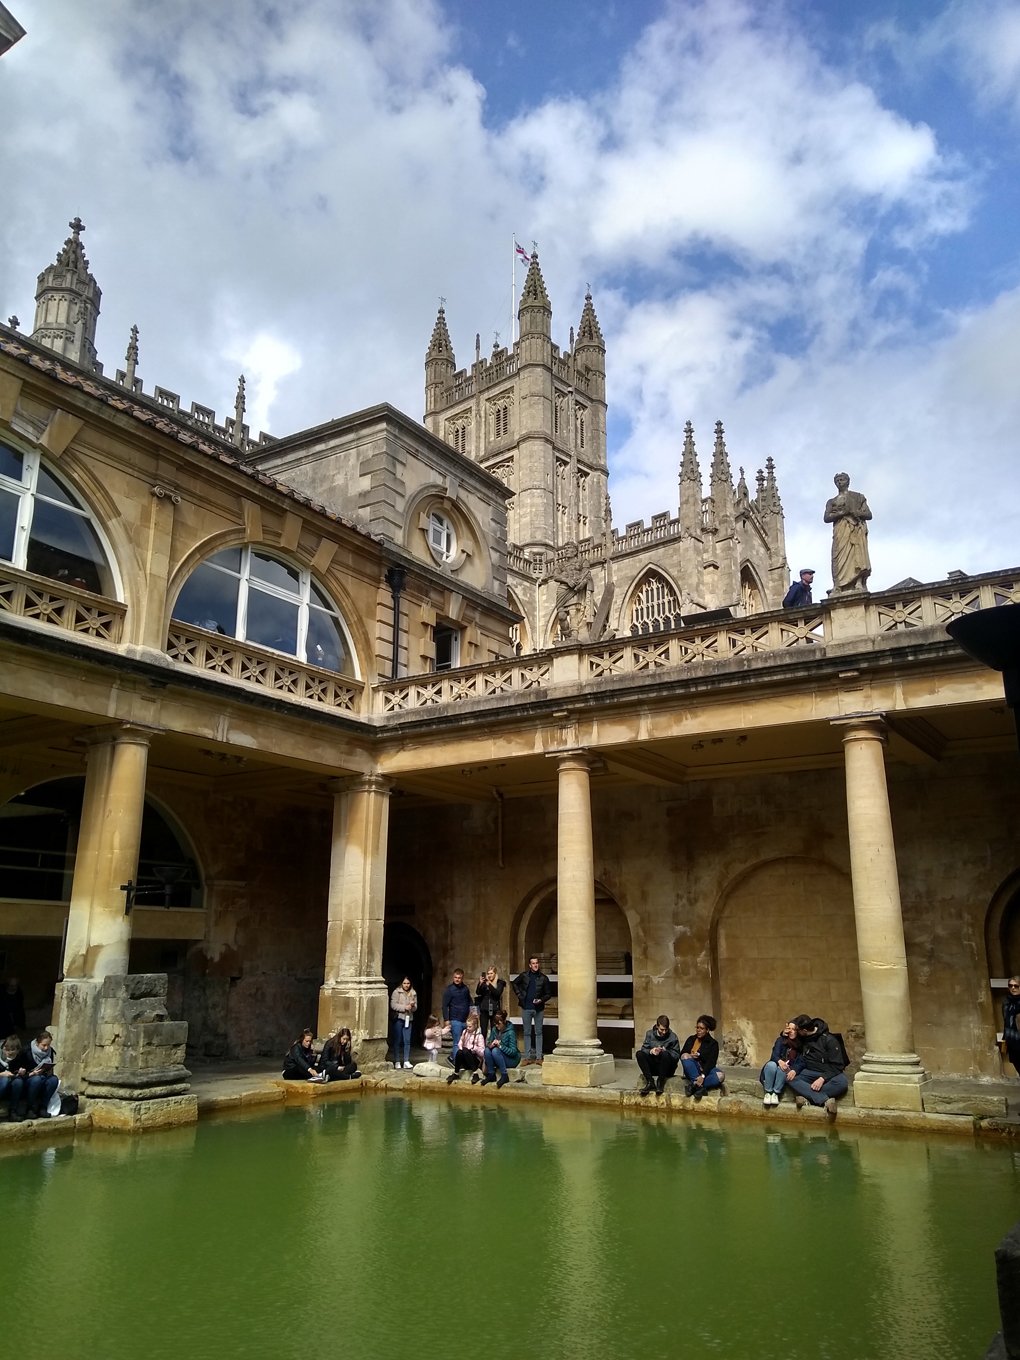 The inside of the Roman baths with Bath abbey behind